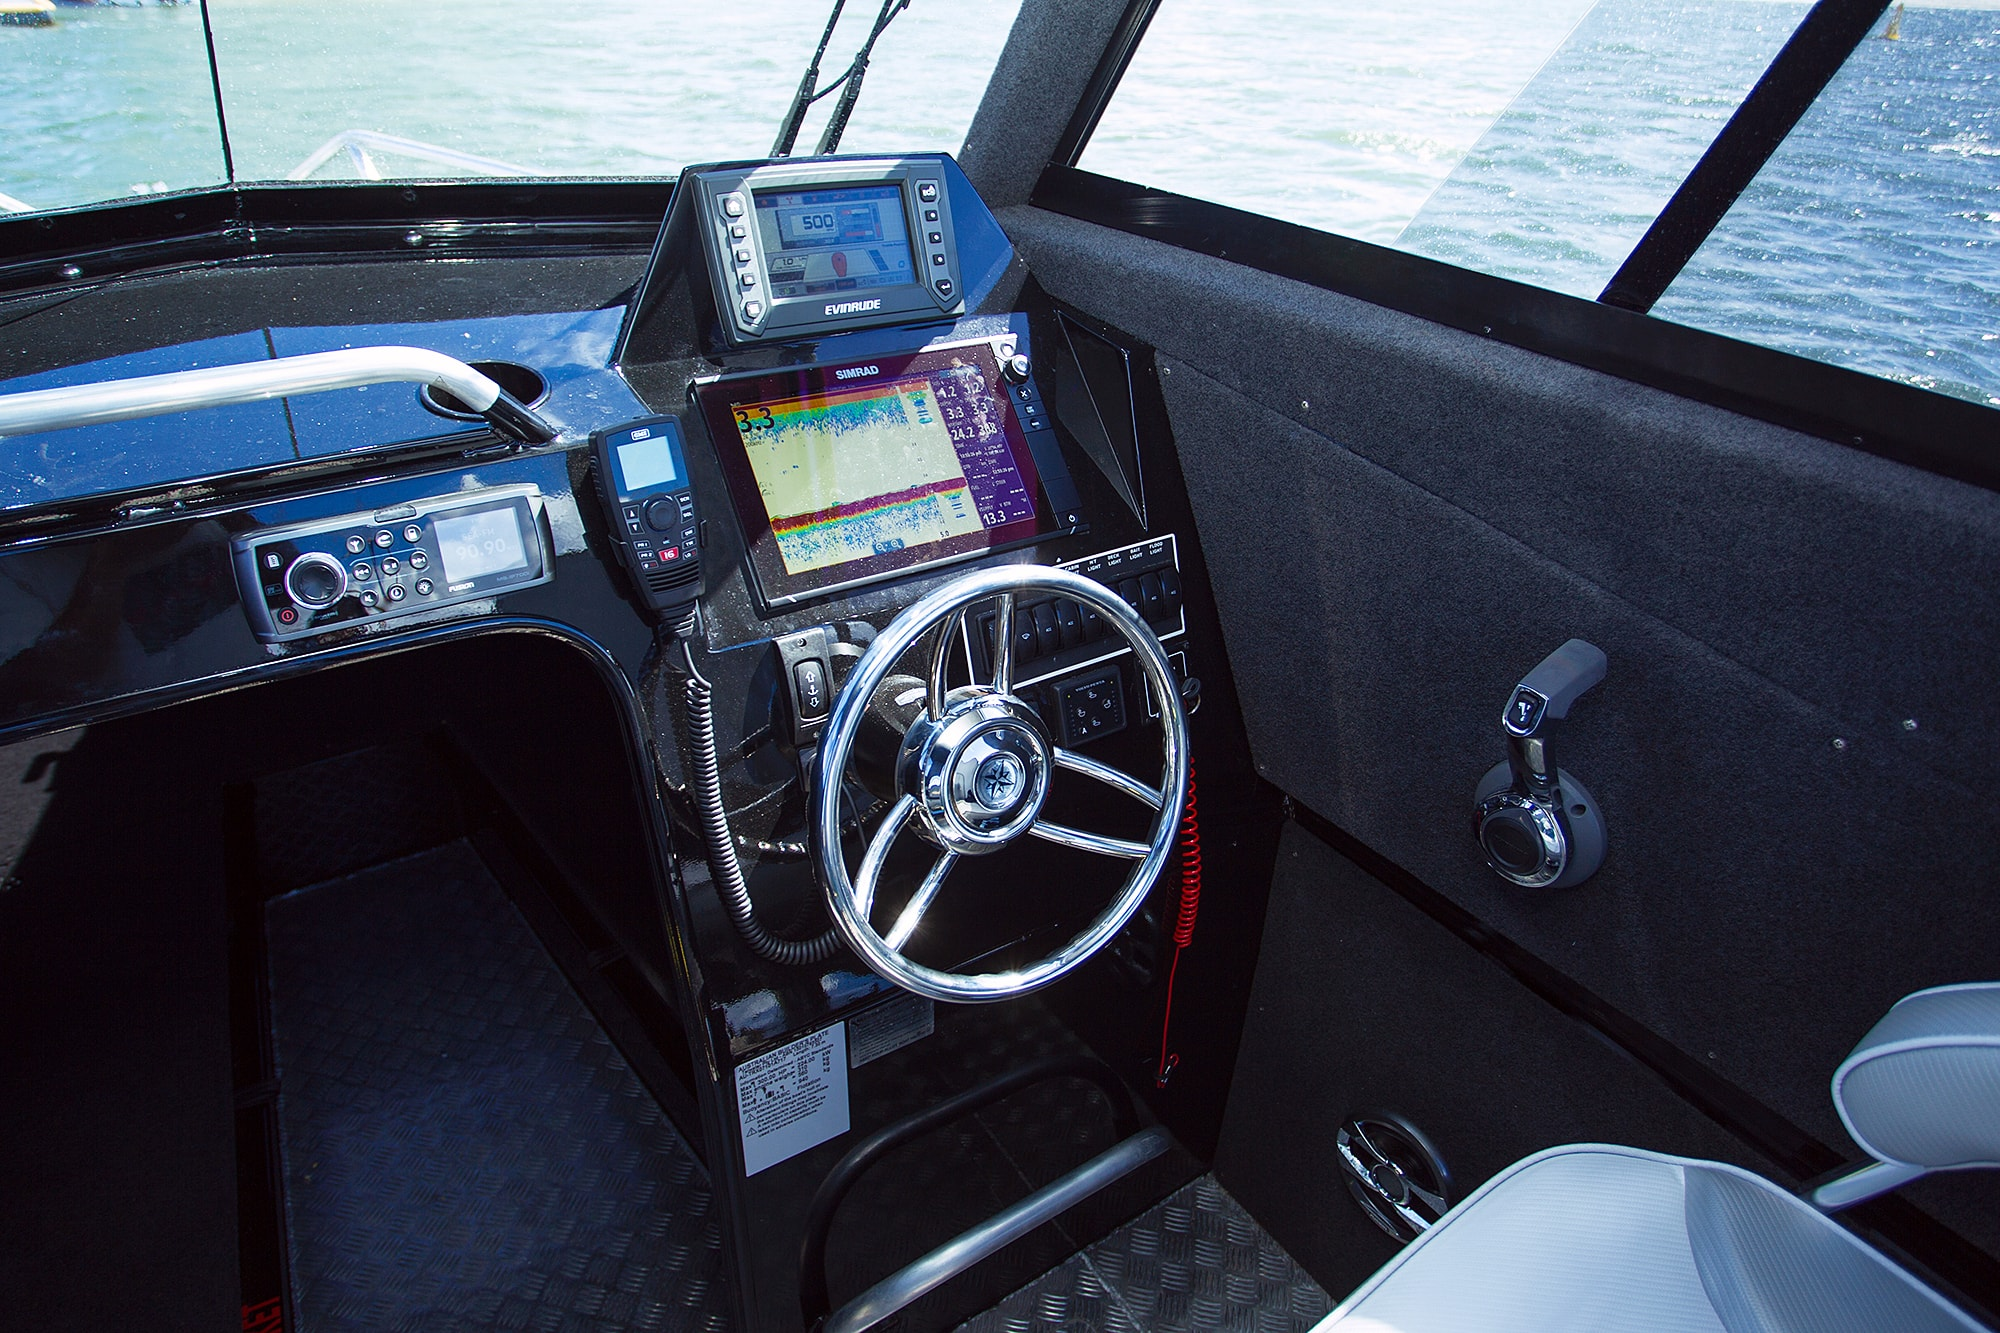 The Hydraulic Steering